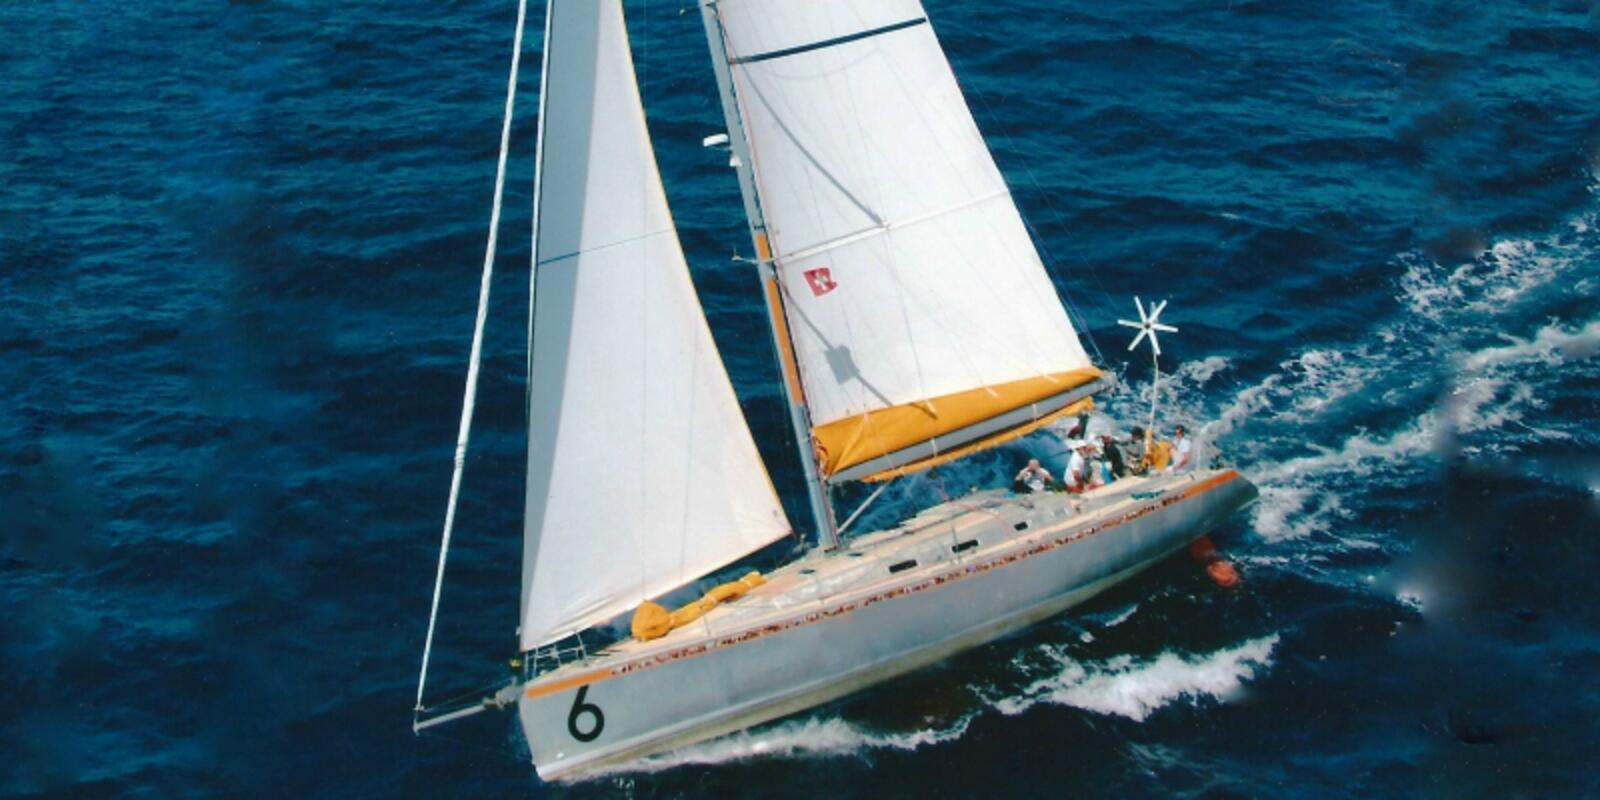 Sailing course, Relaxation and learning in Corsica or Elba island!